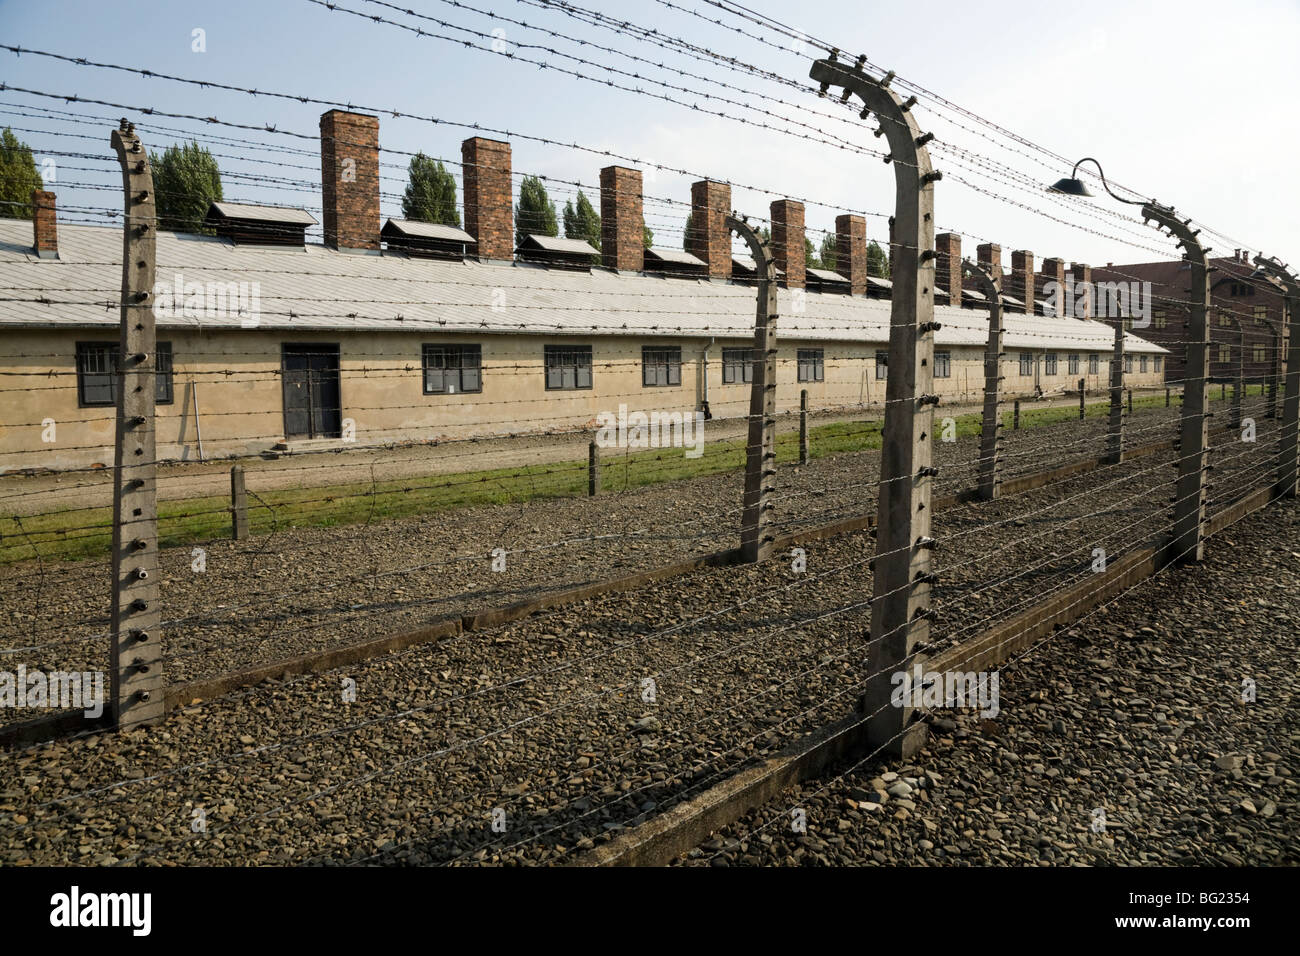 Perimeter electric fence at Auschwitz Nazi death camp in Oswiecim, Poland. Chimneys from the kitchen block are visible - Stock Image